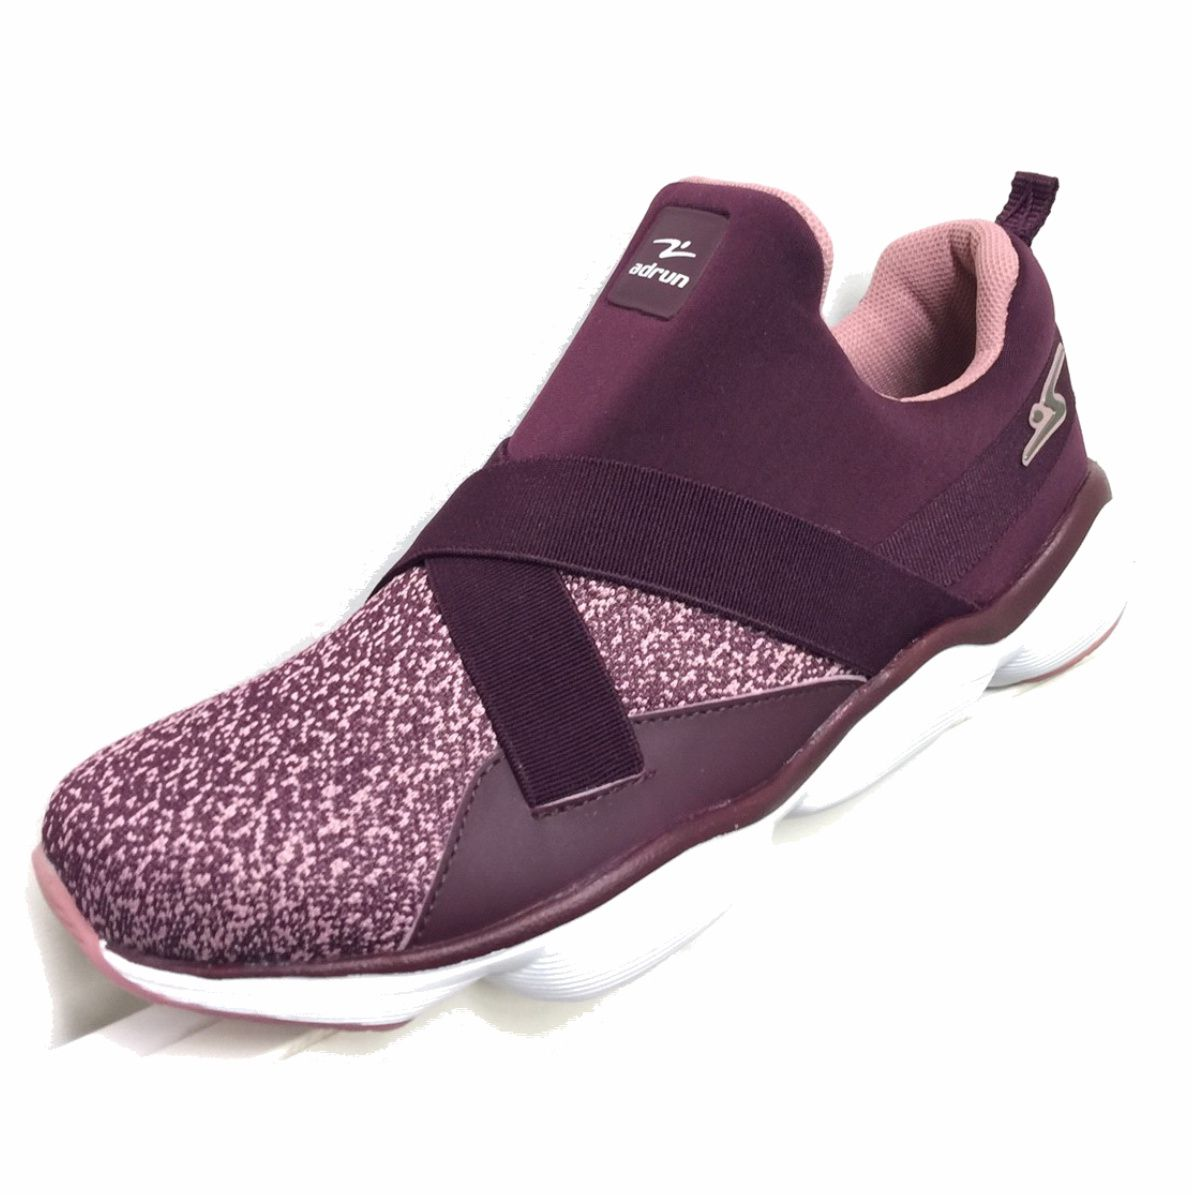 Tenis Adrun Soft Fit Training Roxo Rosa